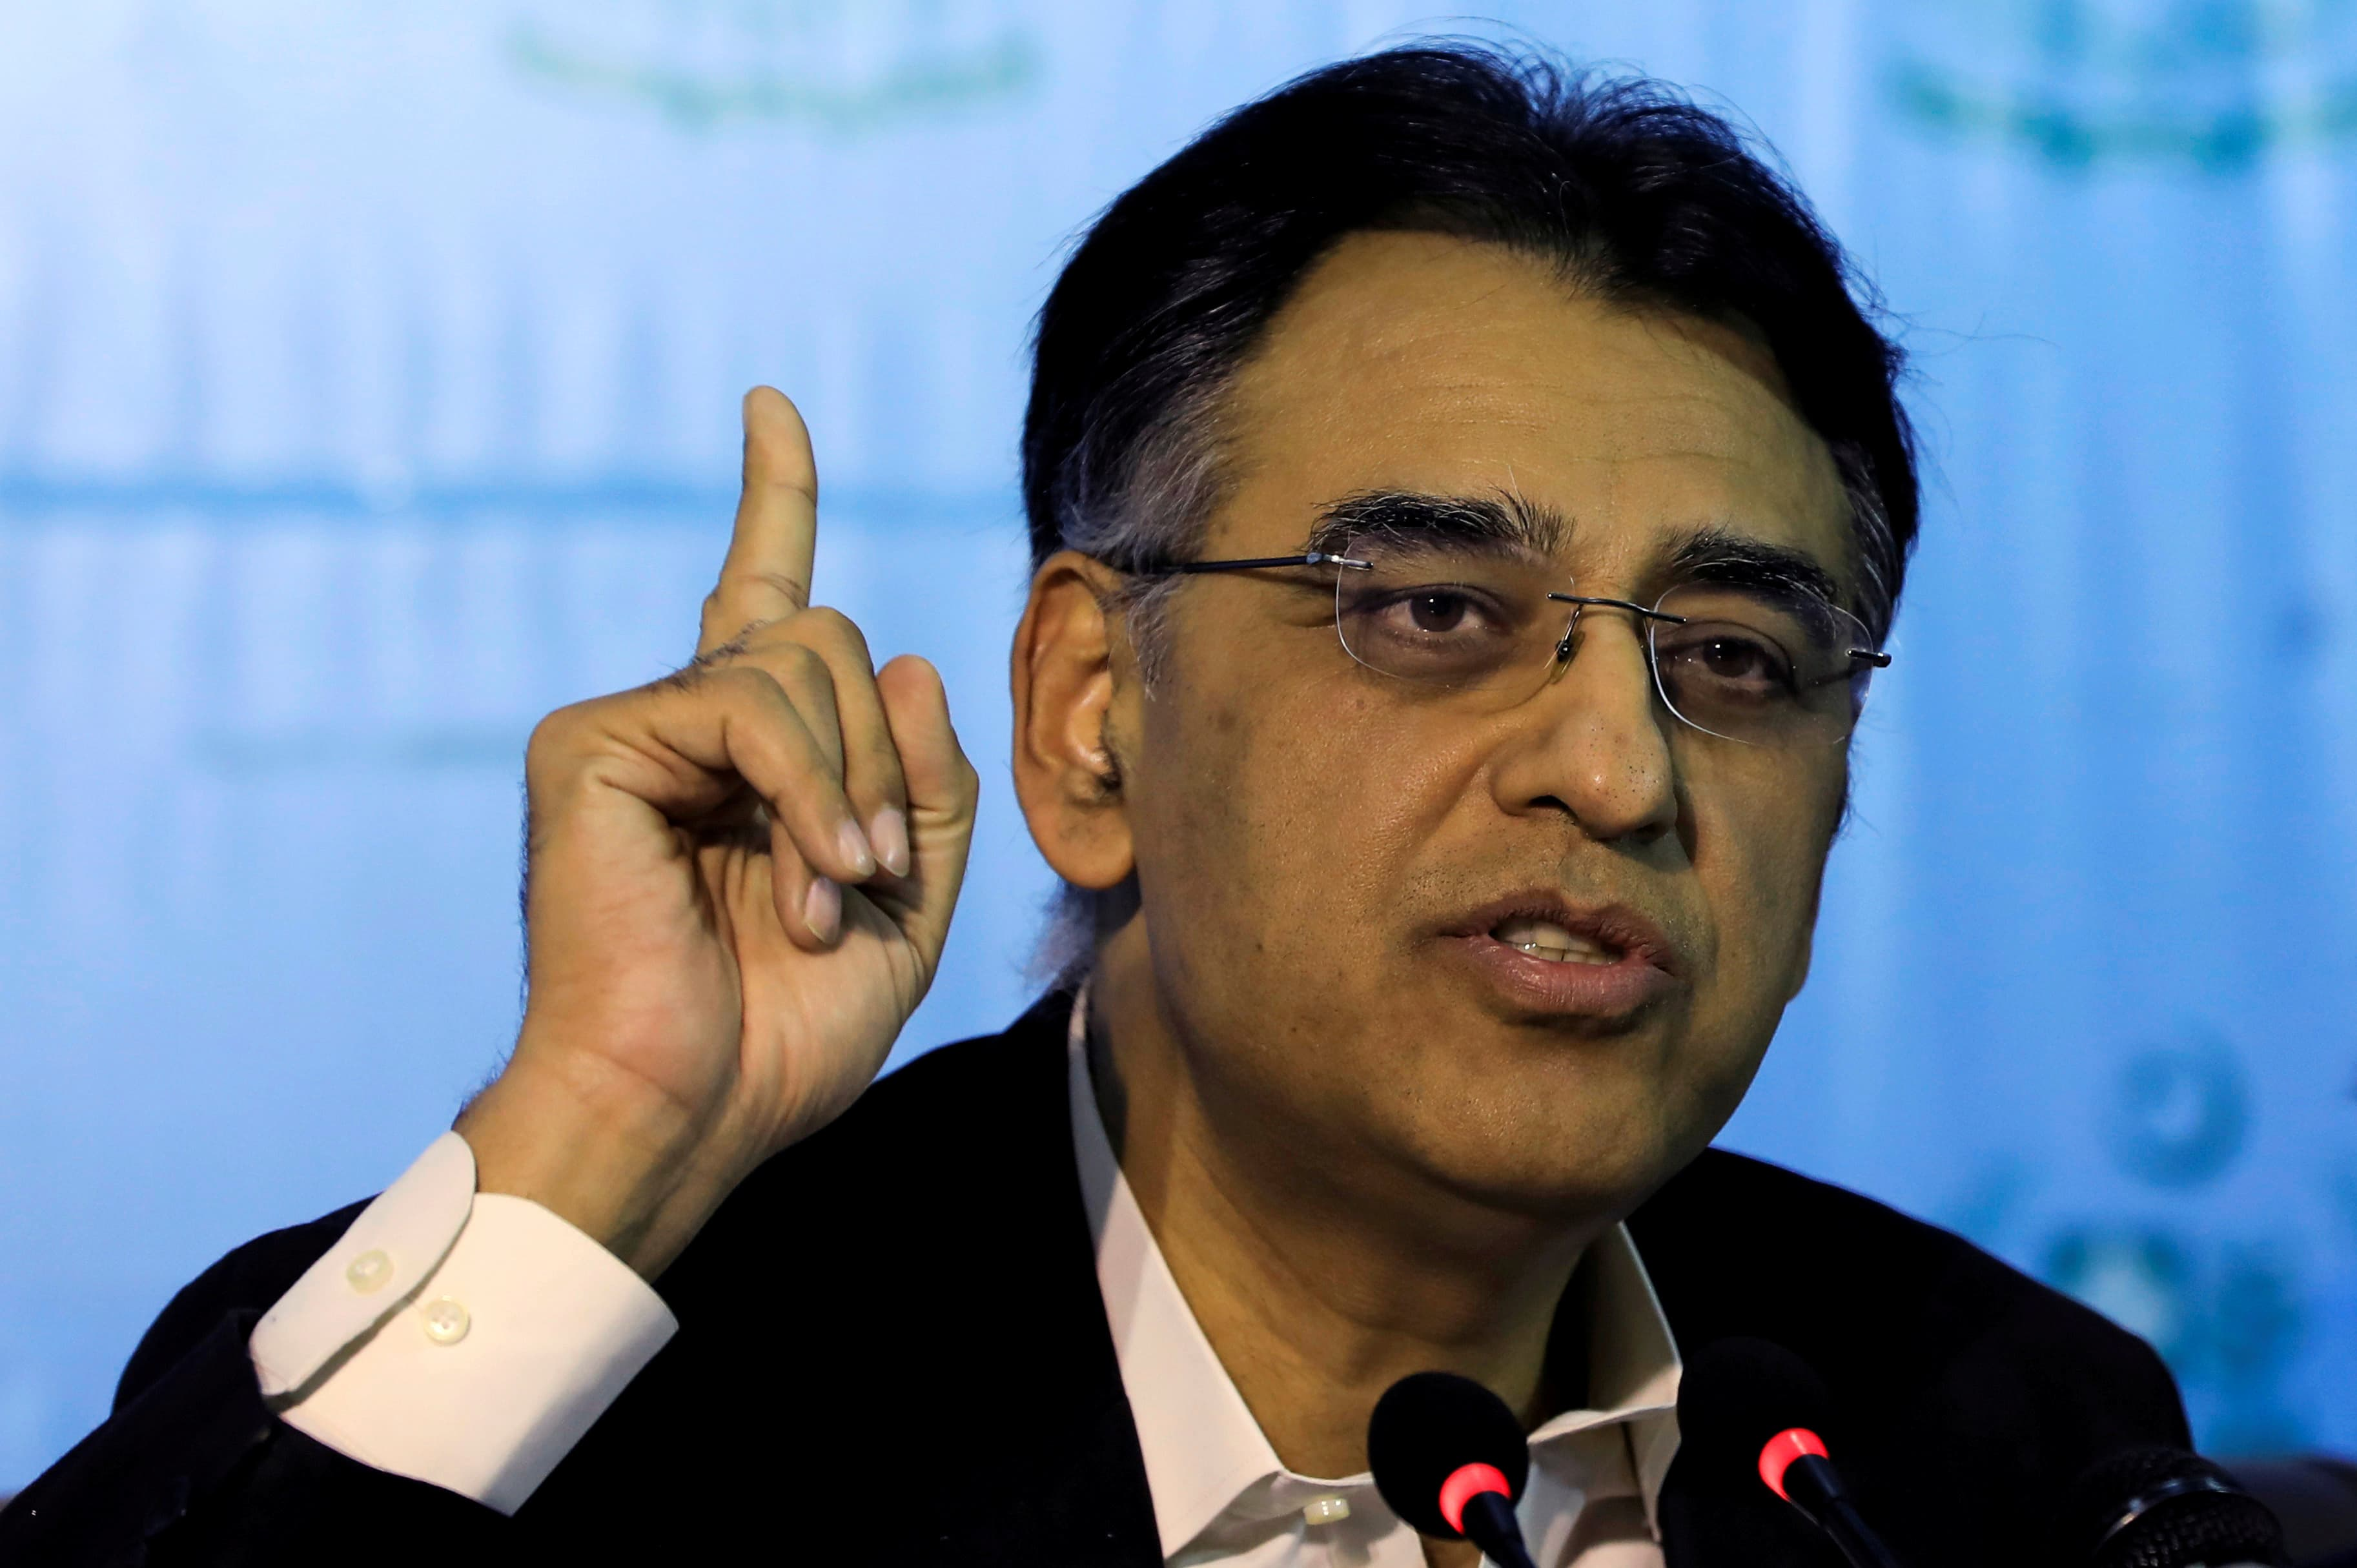 Asad Umar criticised Shehbaz Sharif for holding rallies in the middle of the pandemic. (Reuters)